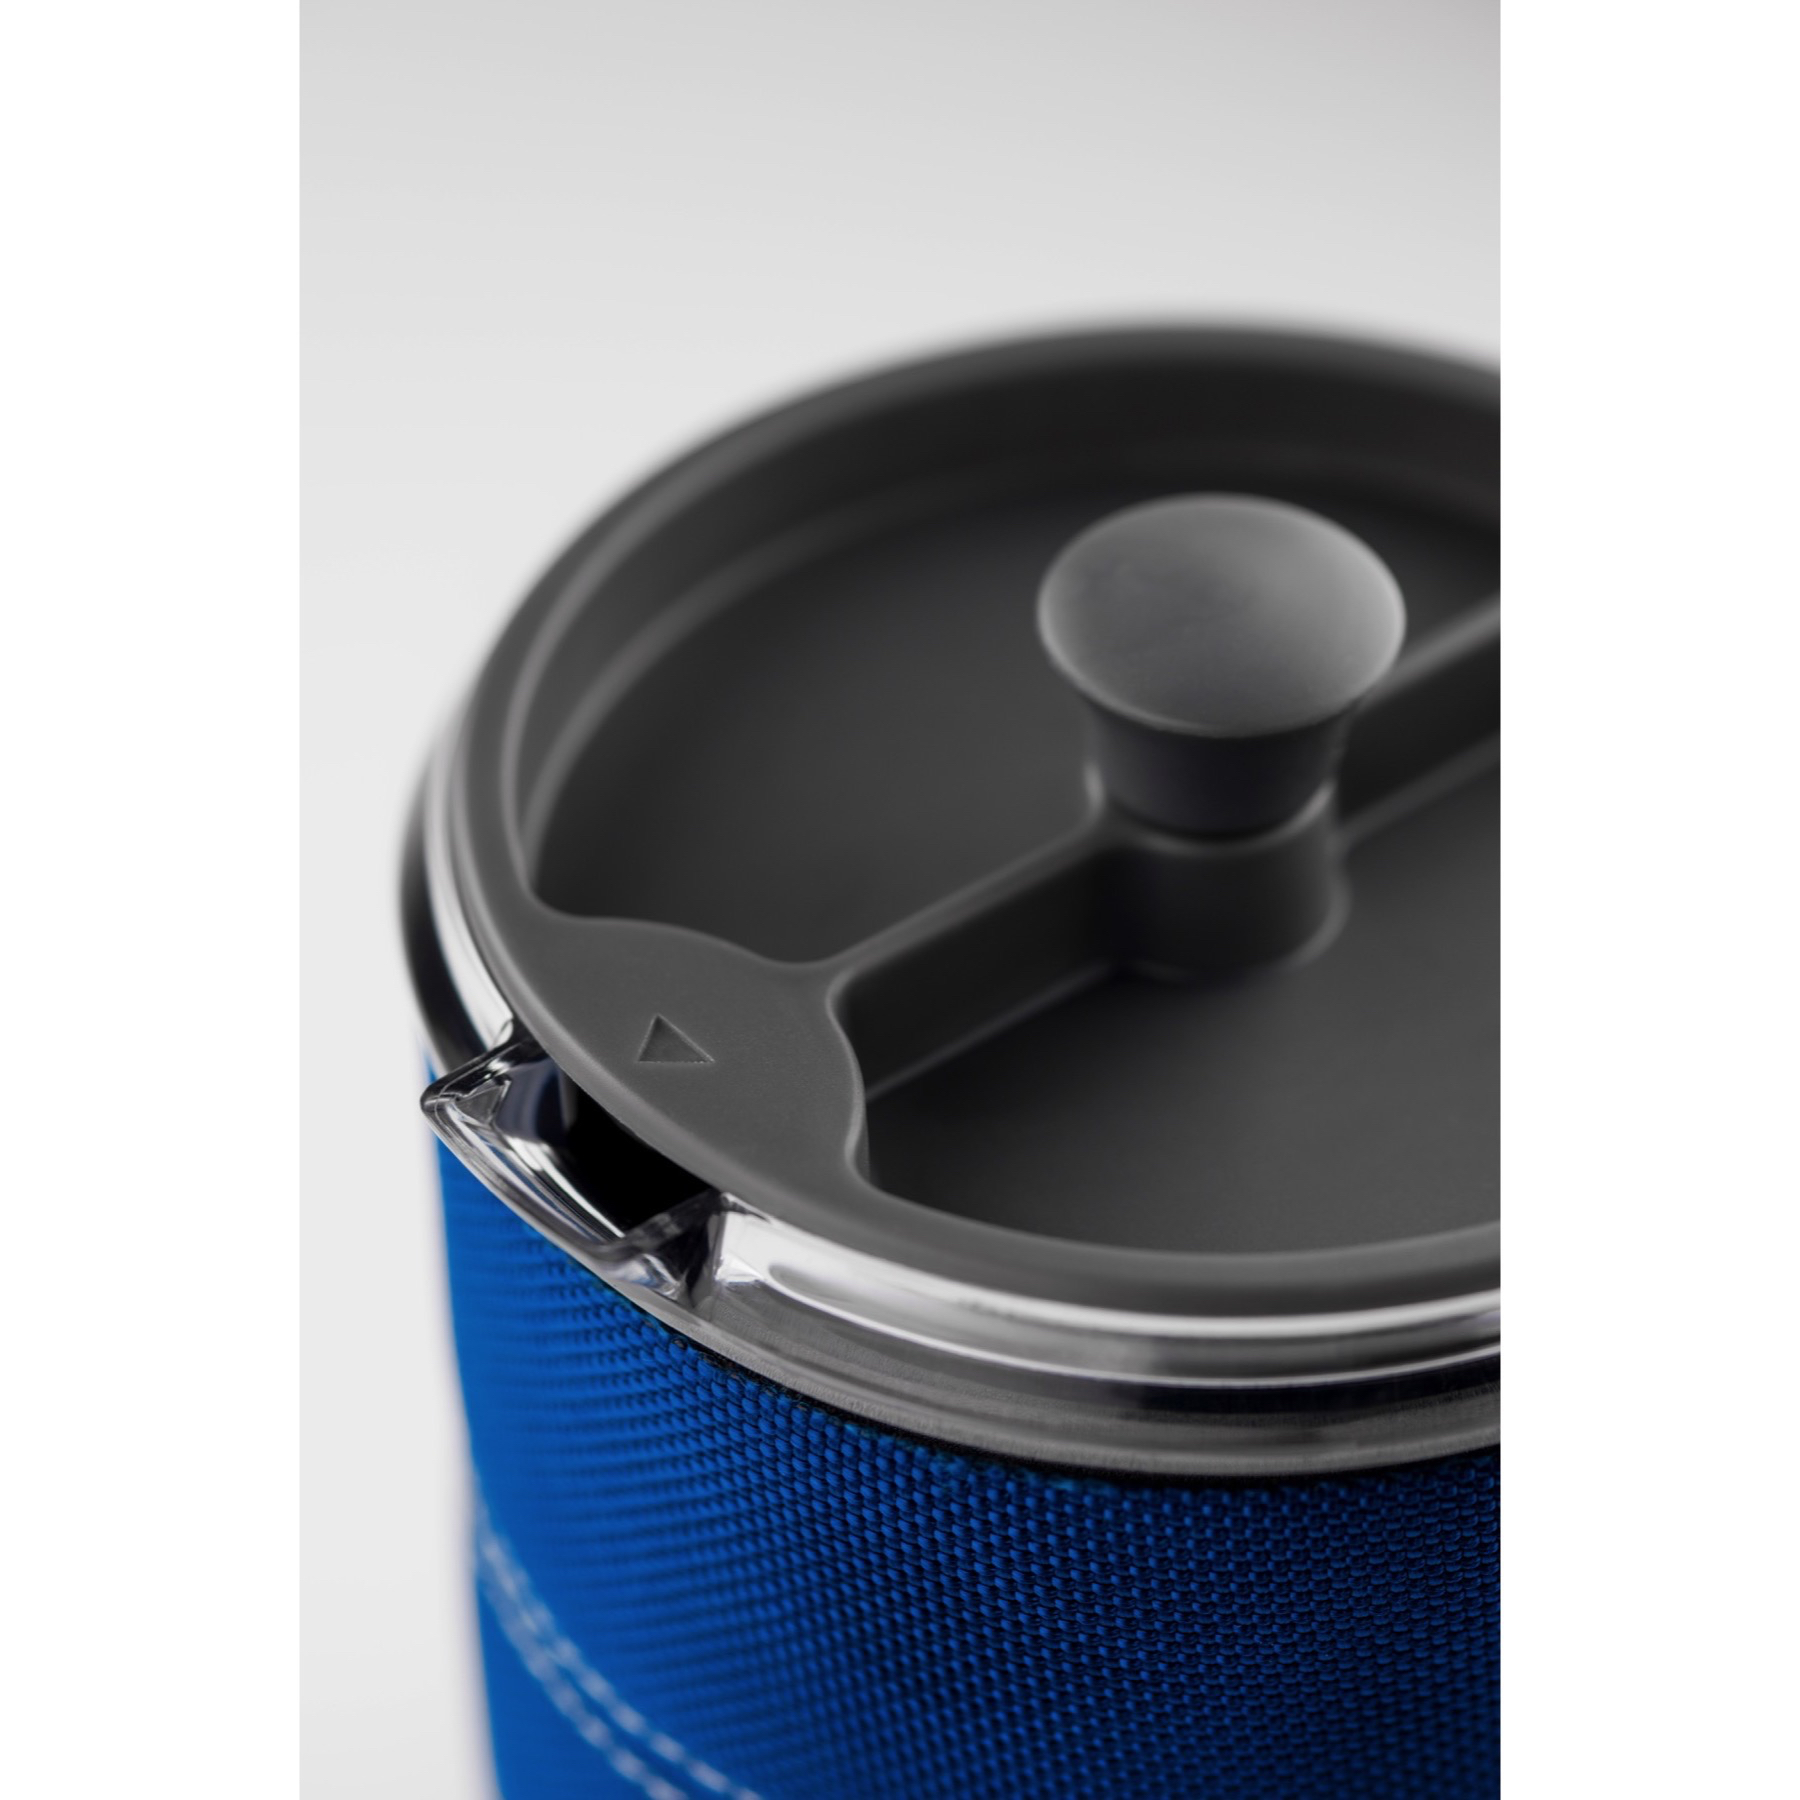 GSI Outdoors 50oz Java Press Blue Portable French Press Coffee Maker Camping 90497000034 eBay